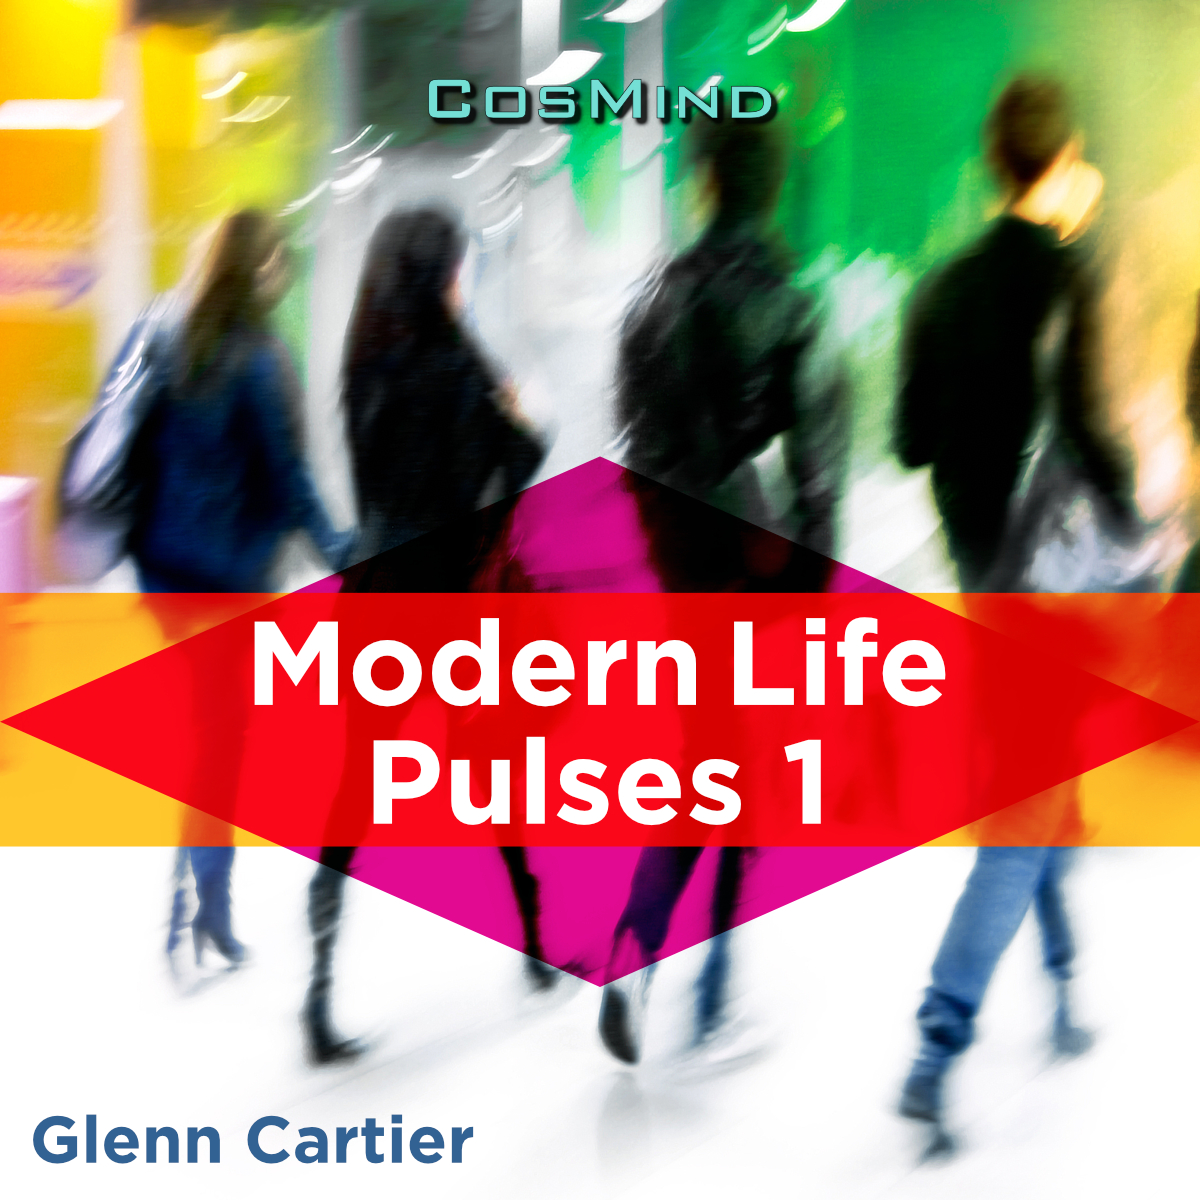 Modern Life Pulses 1